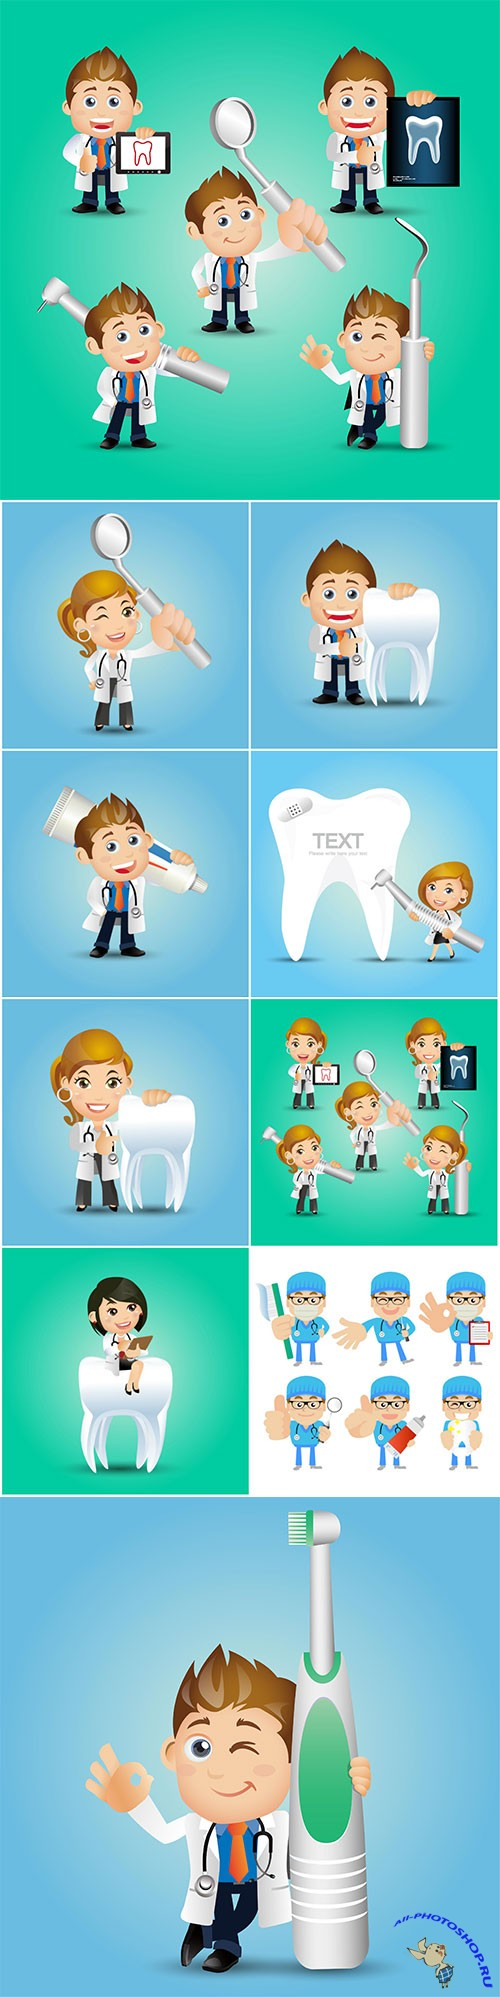 People vector set profession dentist